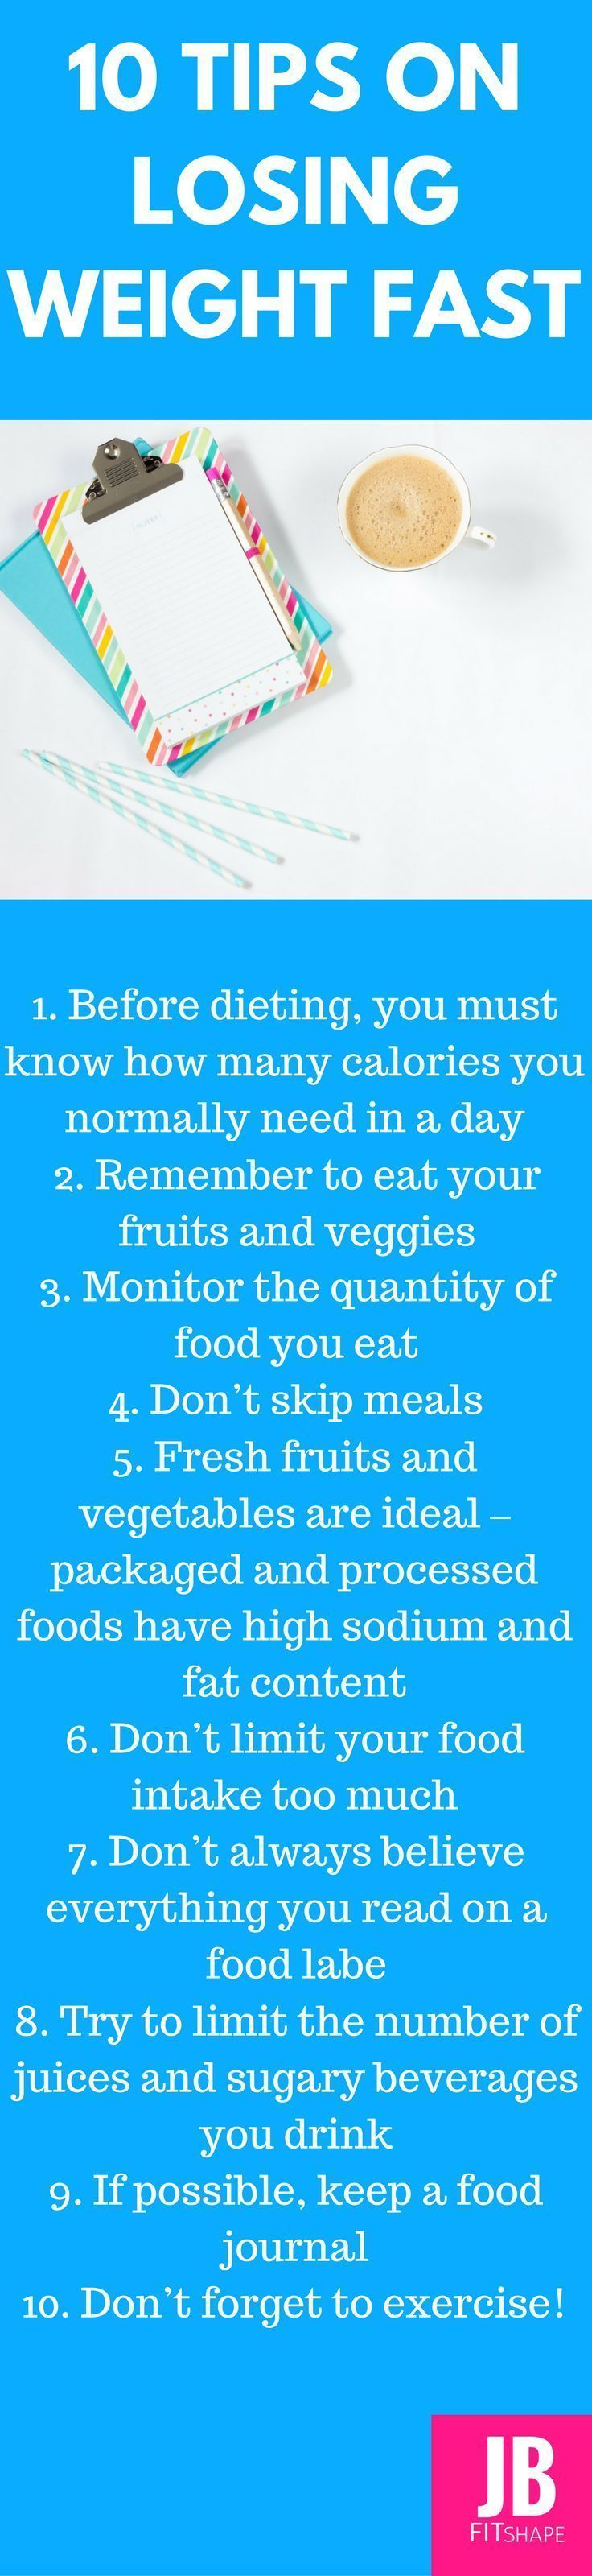 food to remove visceral fat